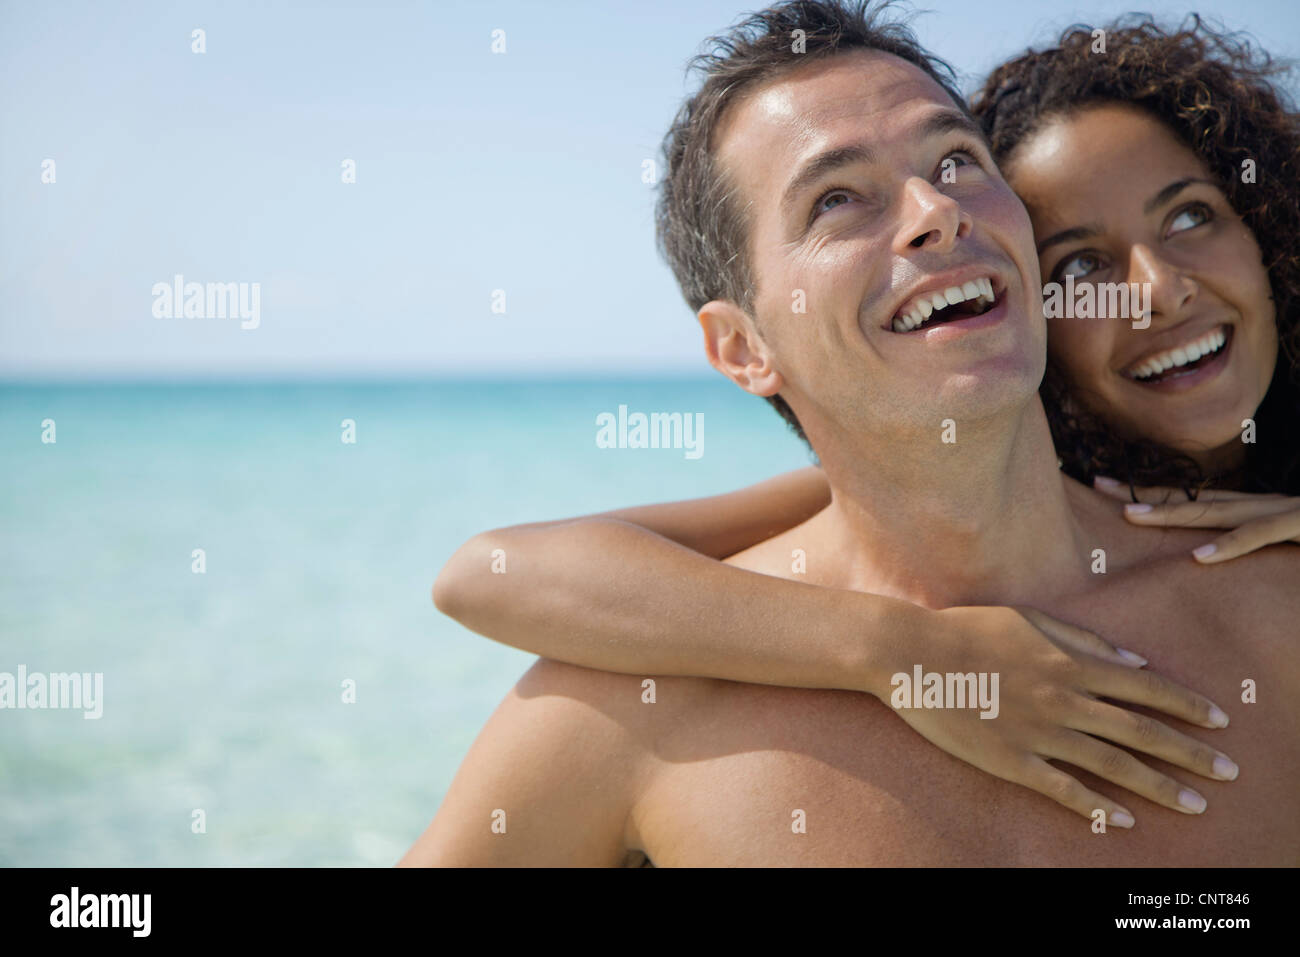 Couple together at the beach, looking up and smiling - Stock Image